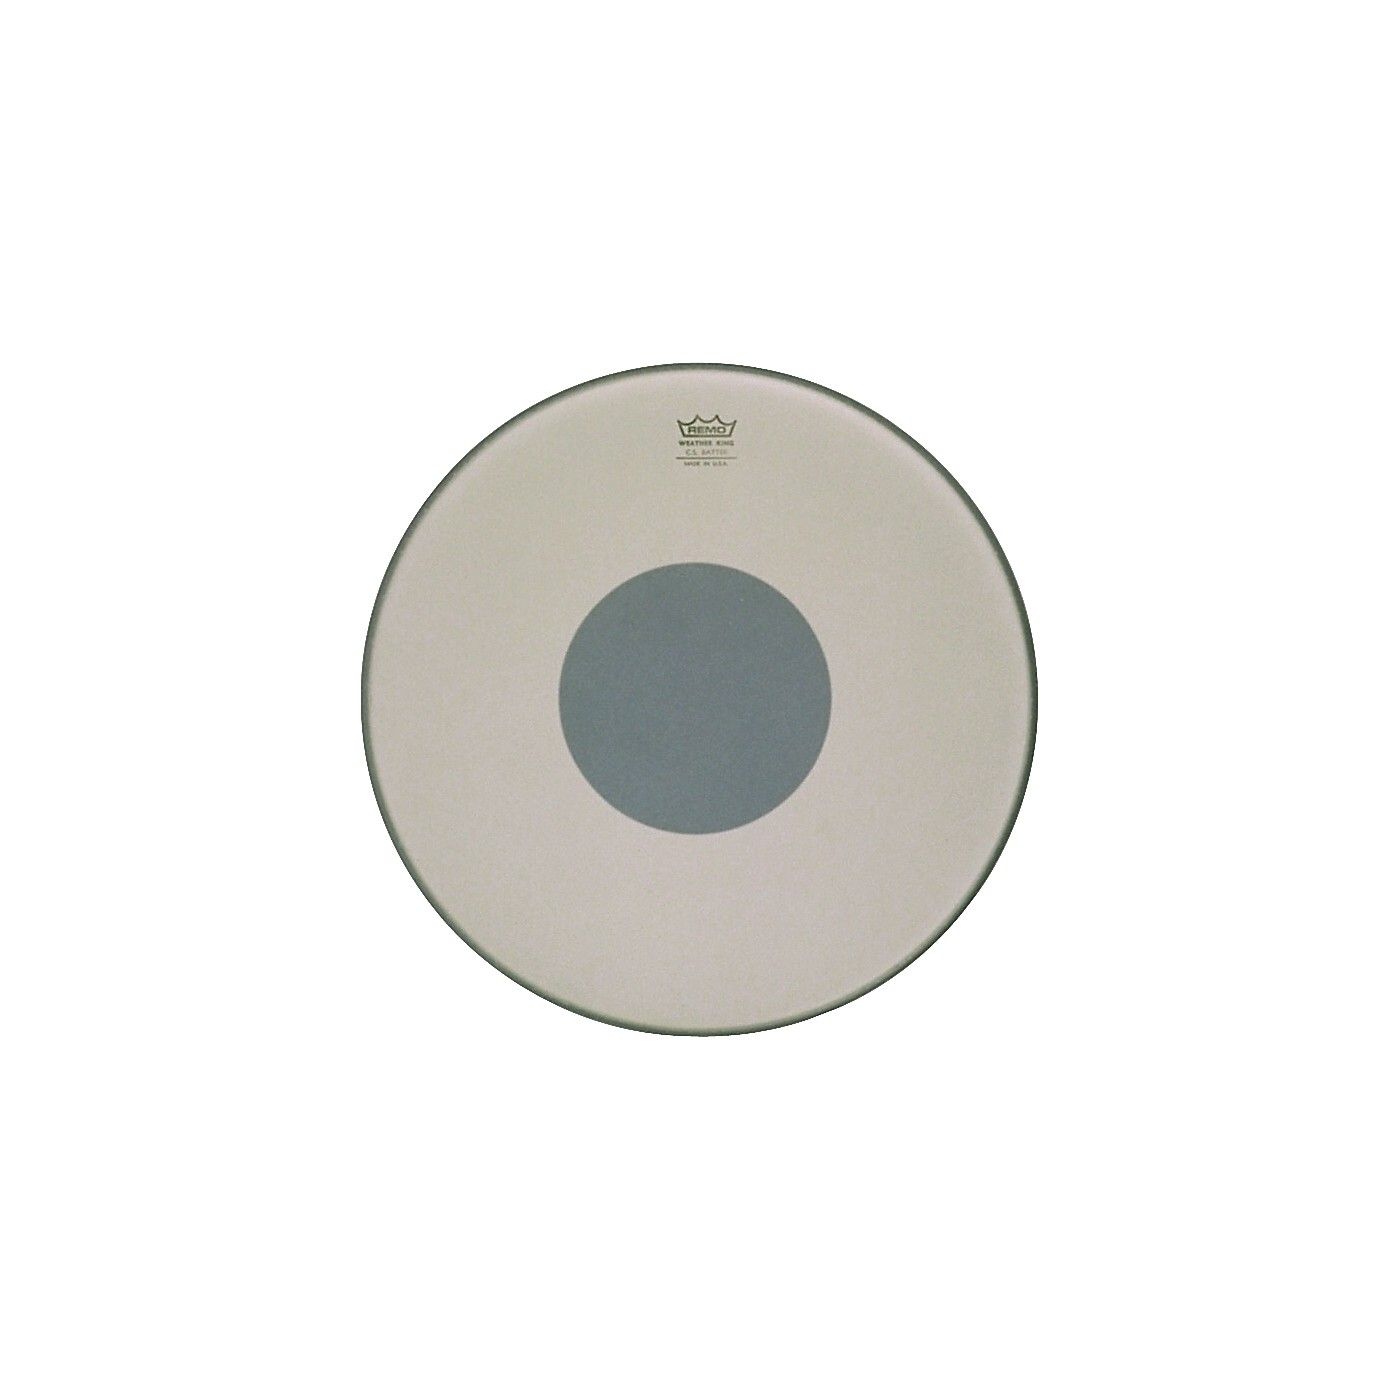 Remo Controlled Sound Smooth White with Black Dot Bass Drum thumbnail